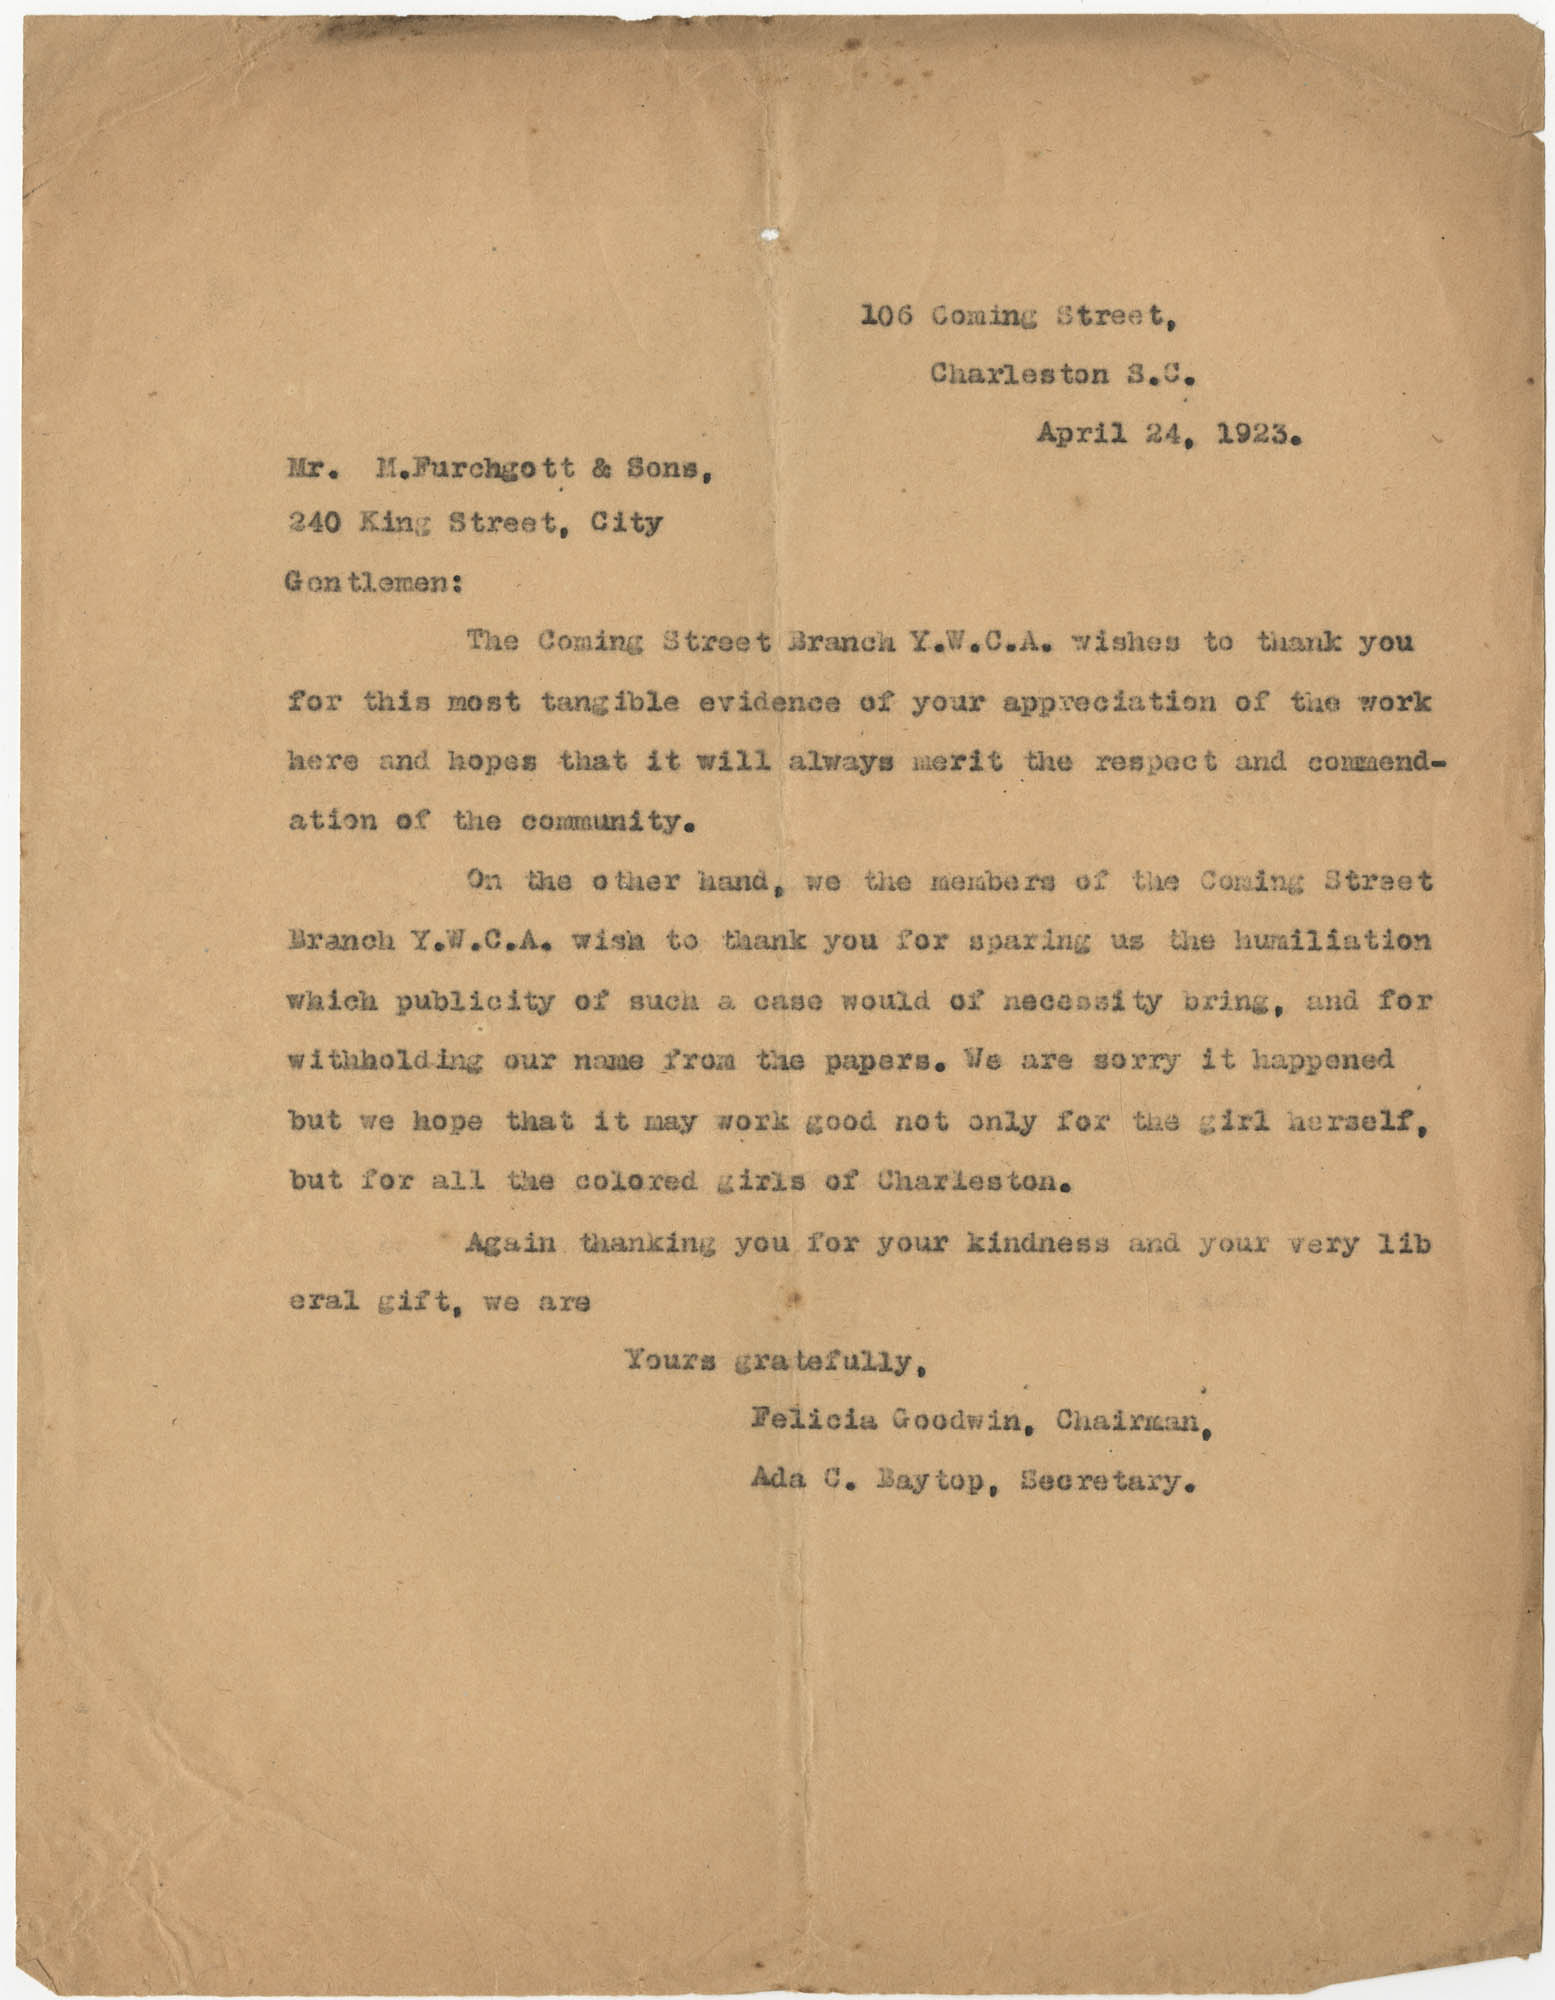 Letter from Felicia Goodwin and Ada C. Baytop to M. Furchgott and Sons, April 24, 1923